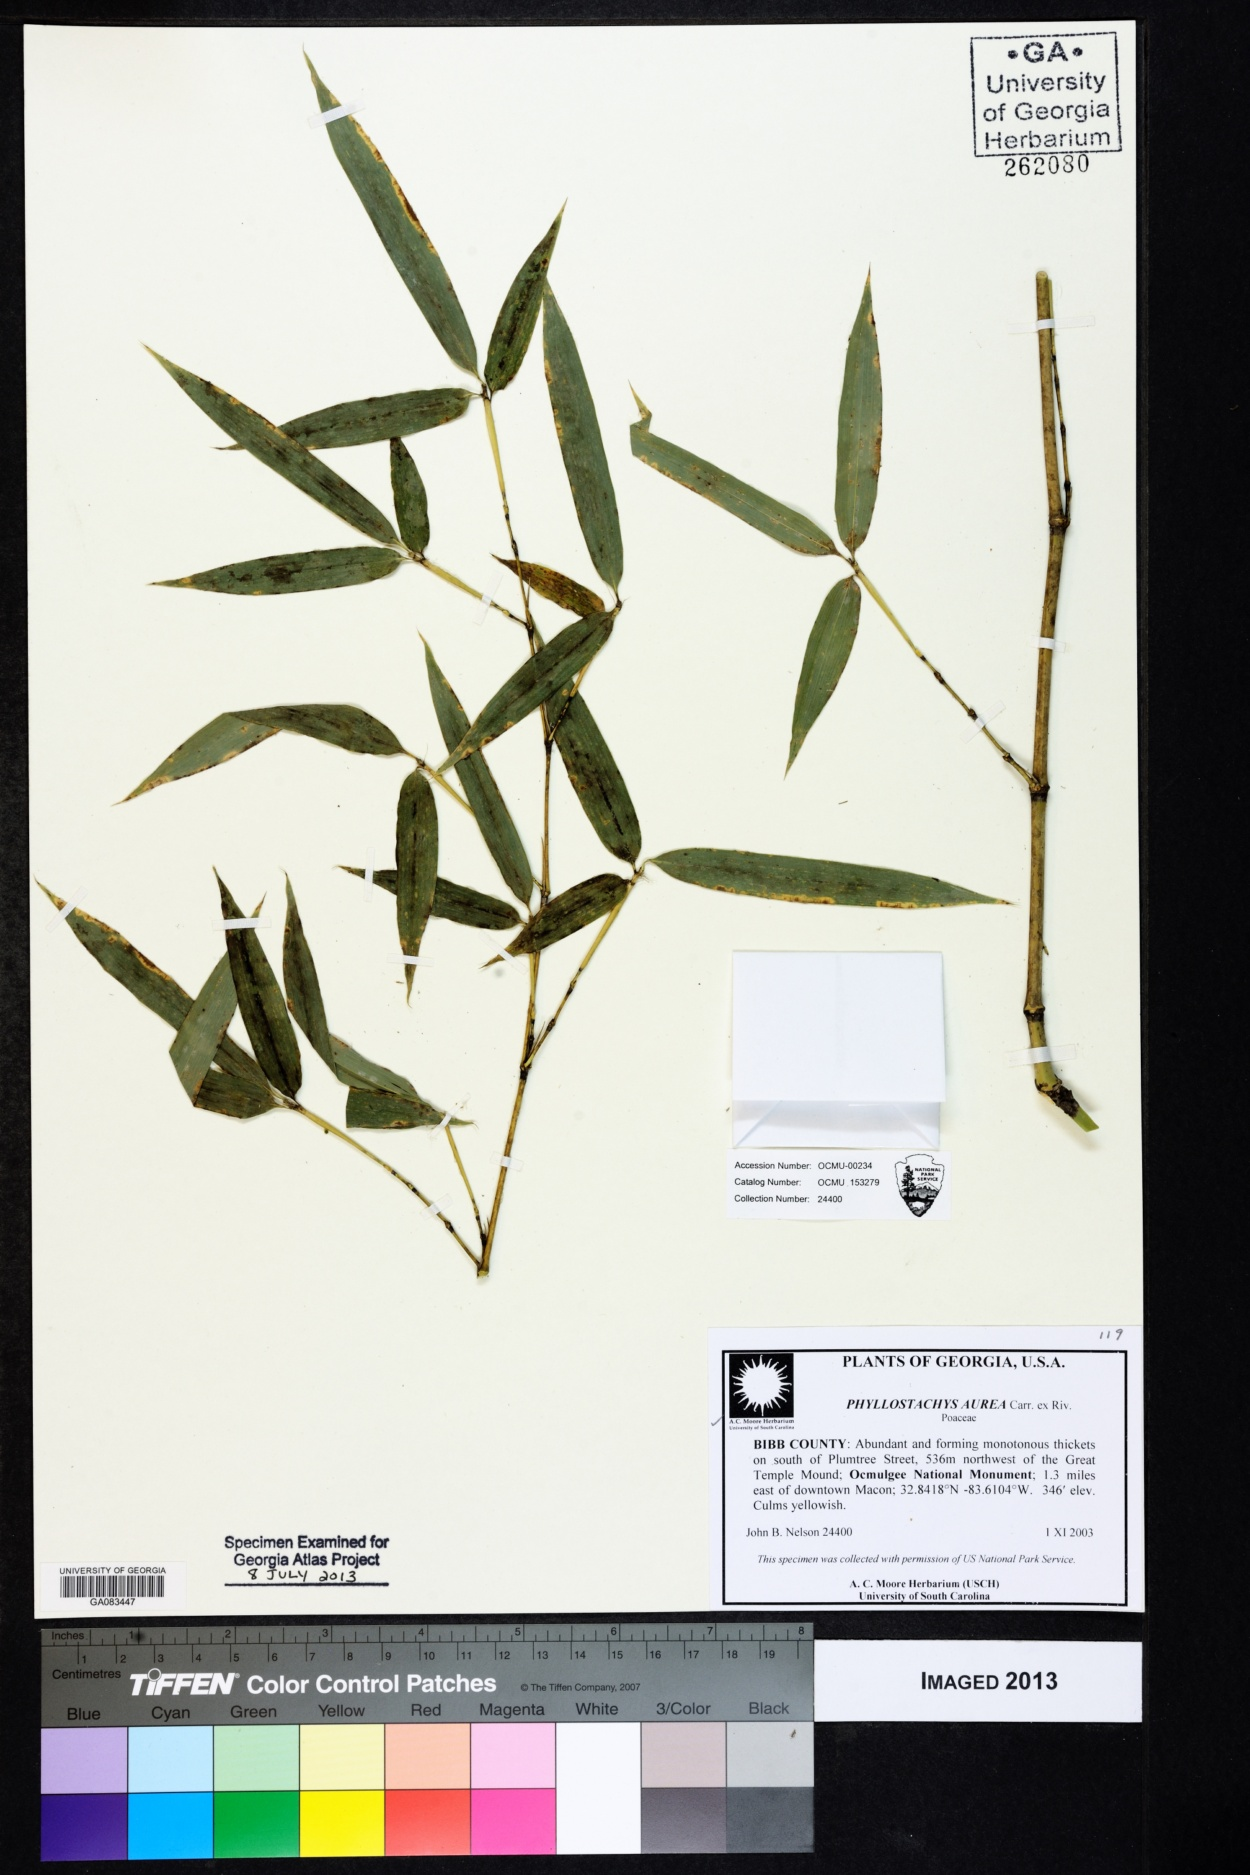 Phyllostachys image